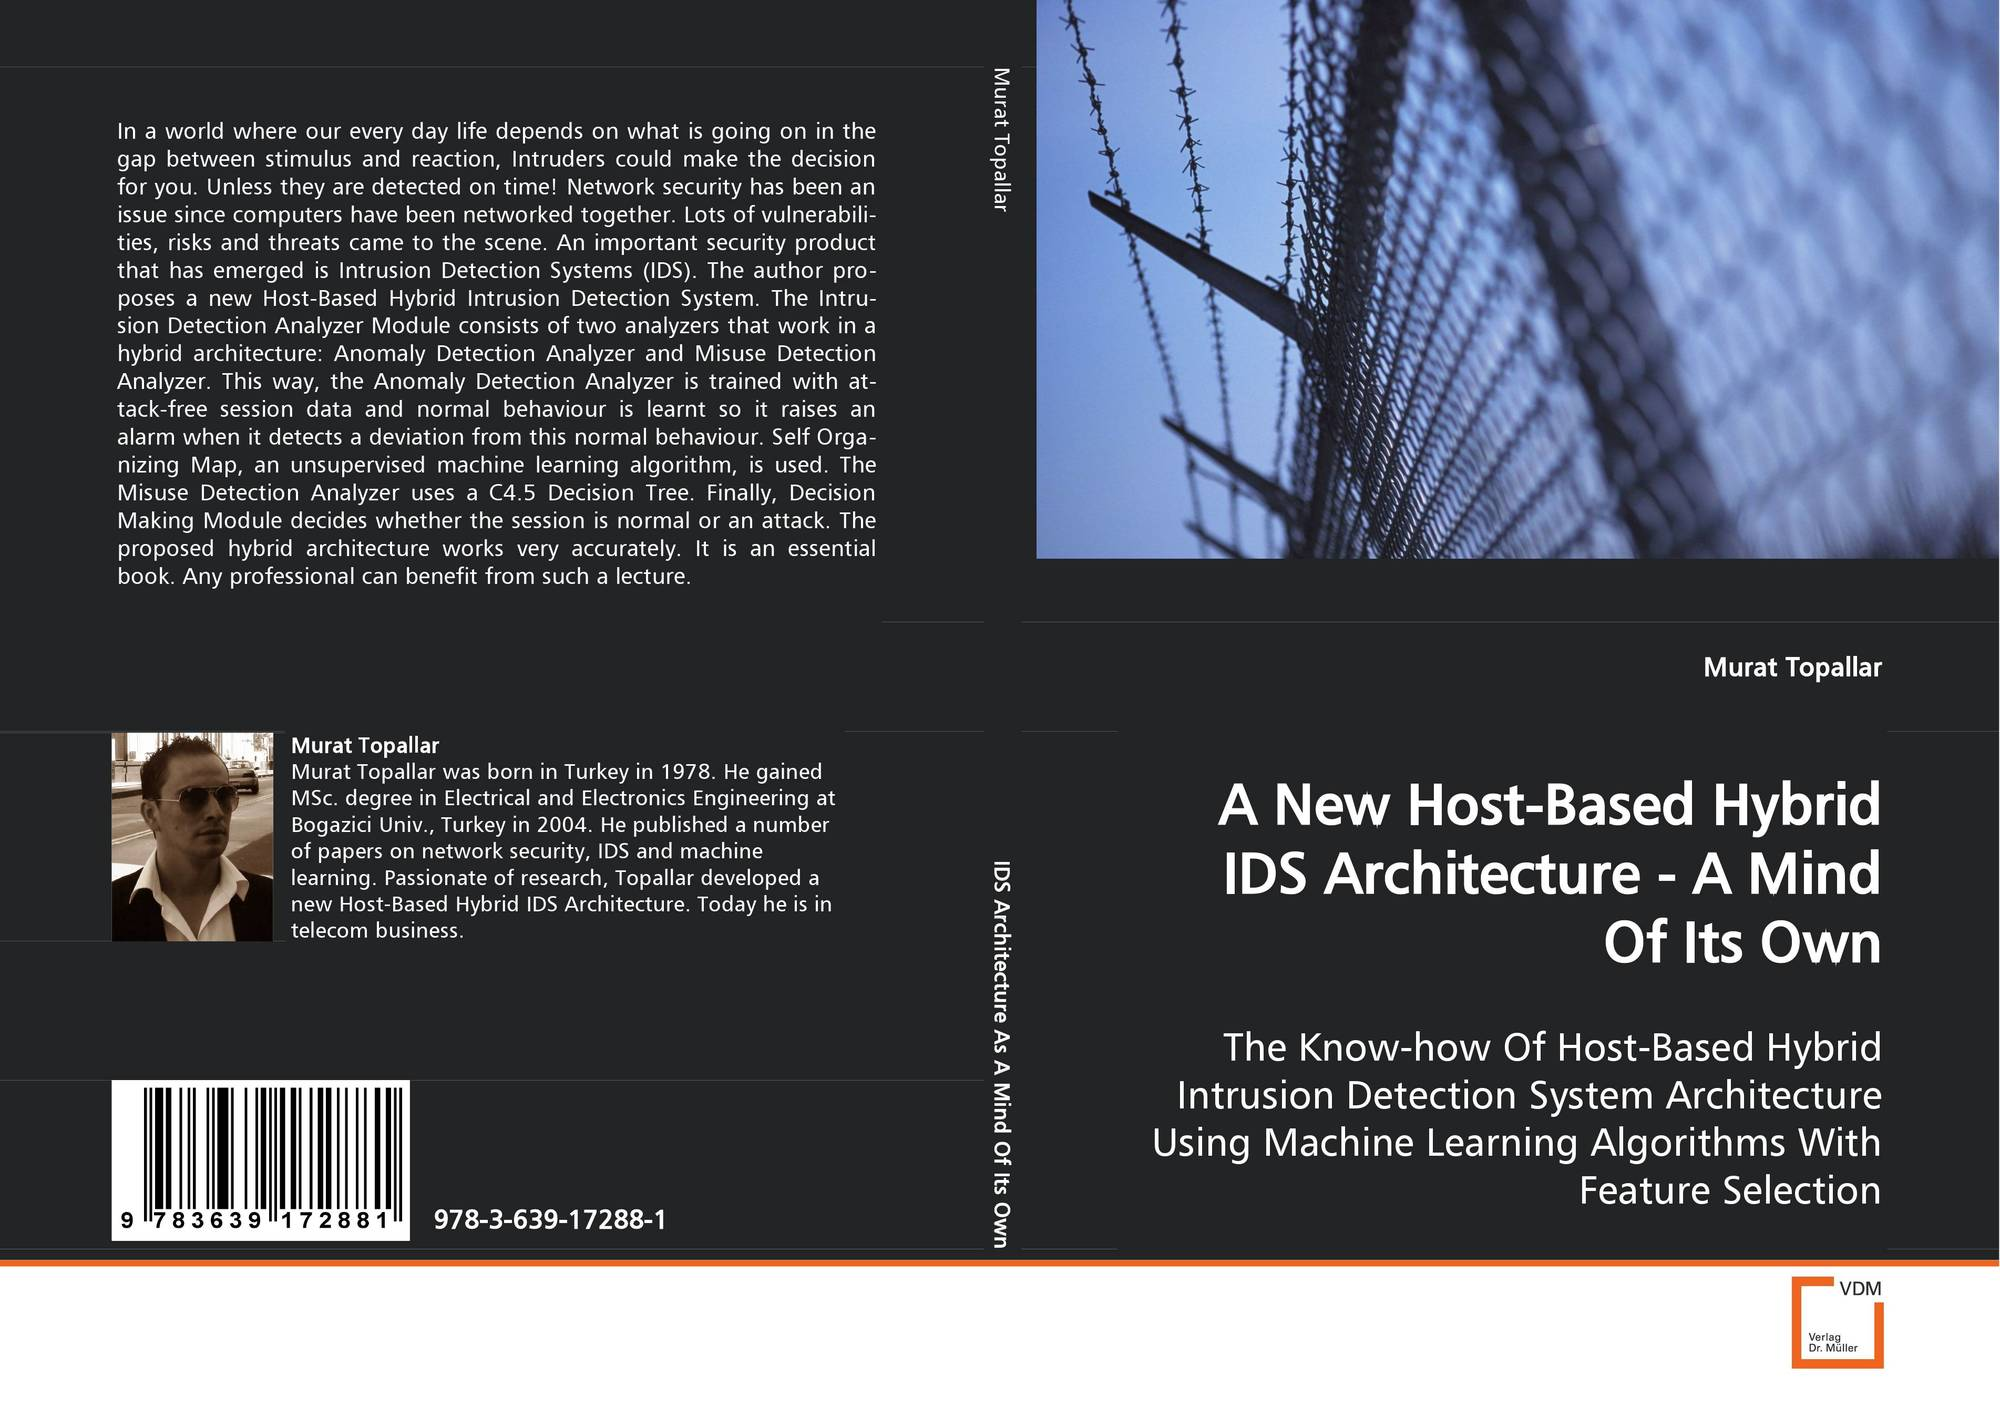 A New Host-Based Hybrid IDS Architecture - A Mind OfIts Own